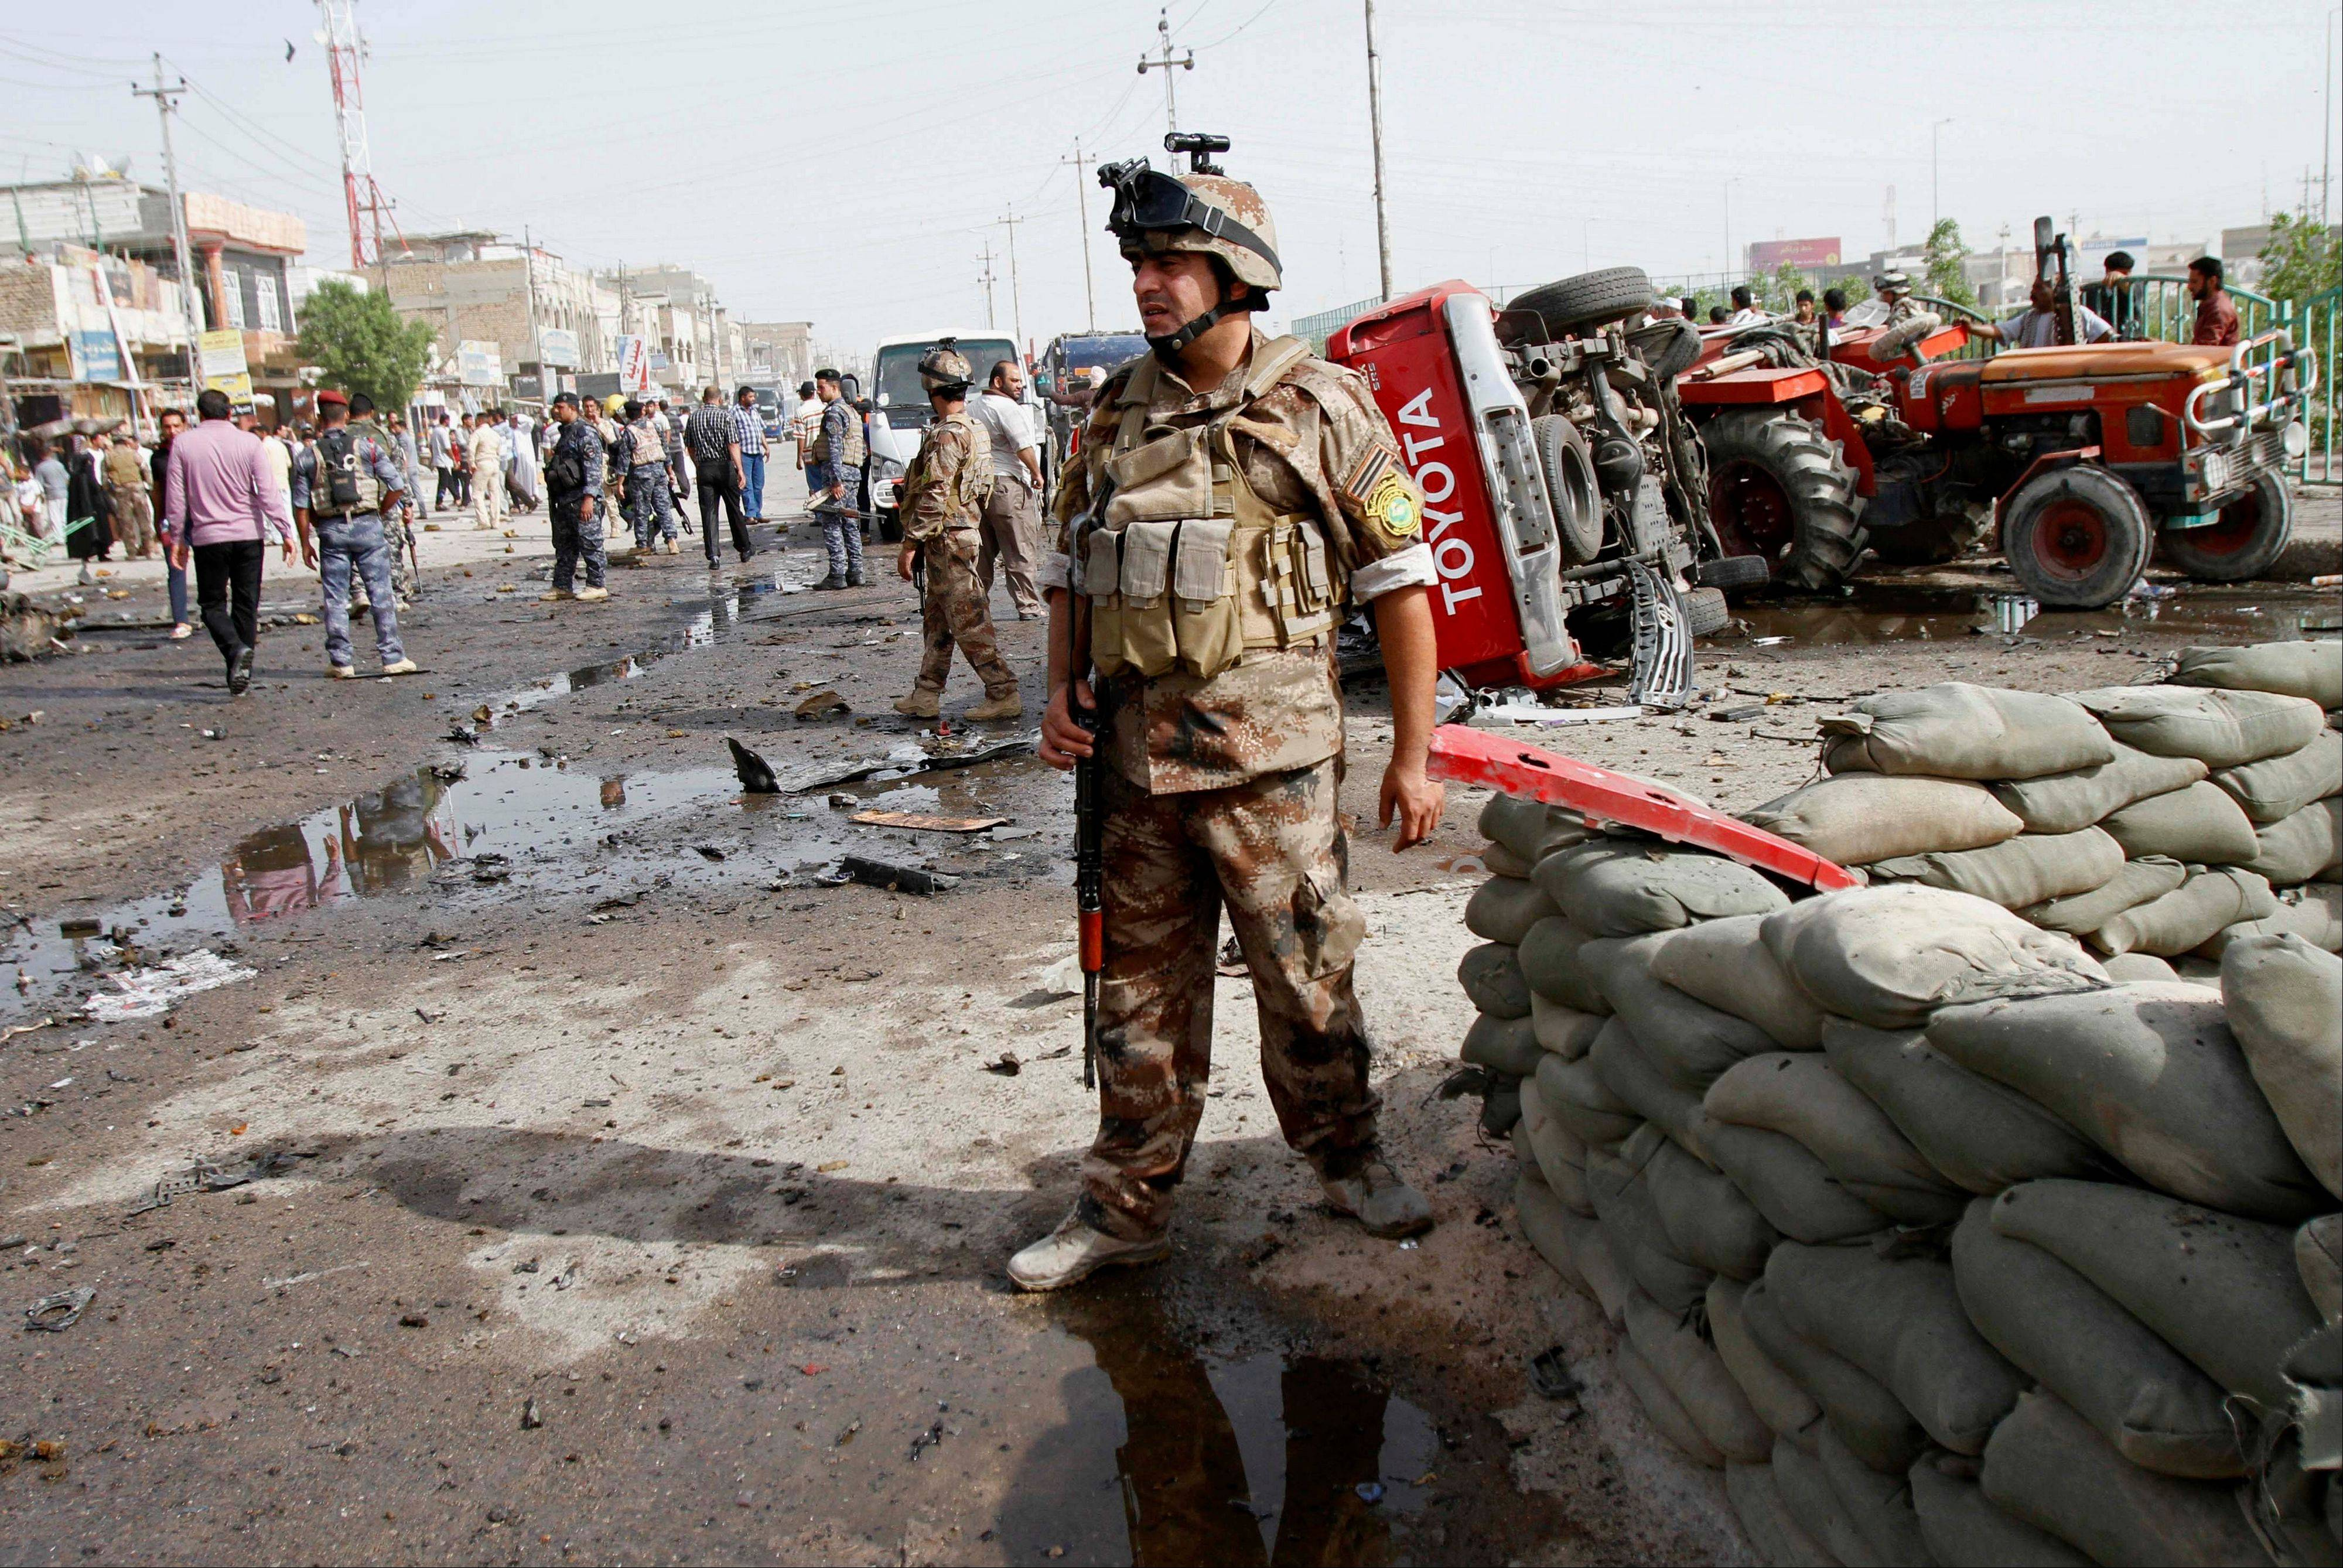 Iraqi security force members inspect the site of a car-bomb attack in Basra, 340 miles southeast of Baghdad, Iraq, Monday. Two car bombings in the southern city of Basra killed and wounded dozens of people, police said.